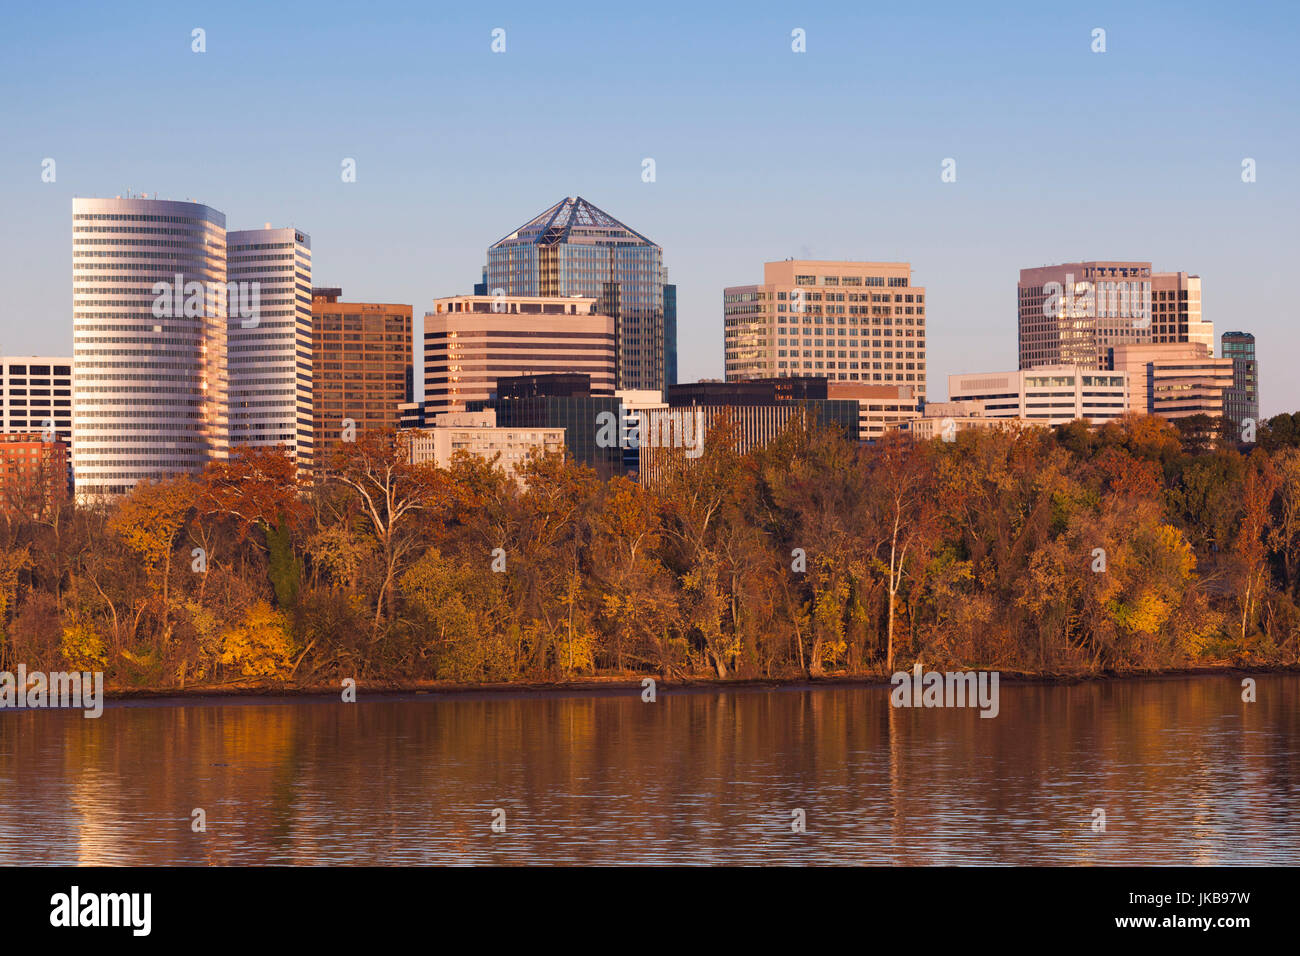 USA, Virginia, Rosslyn, Potomac River and Rosslyn, dawn - Stock Image